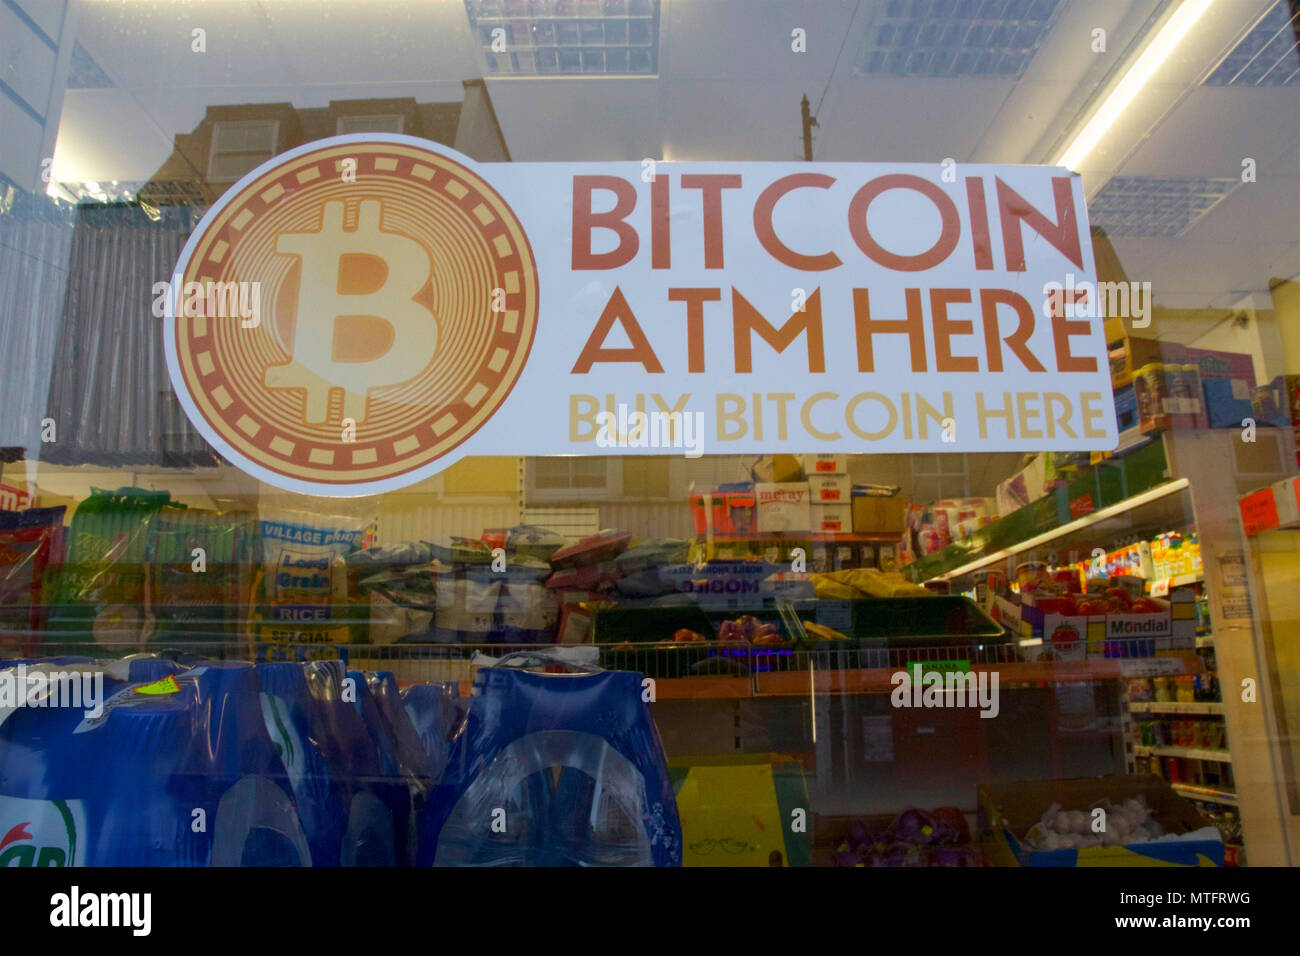 A shop window in london with a sign for a bitcoin atm buy bitcoin a shop window in london with a sign for a bitcoin atm buy bitcoin here showing the rising popularity of the currency ccuart Choice Image